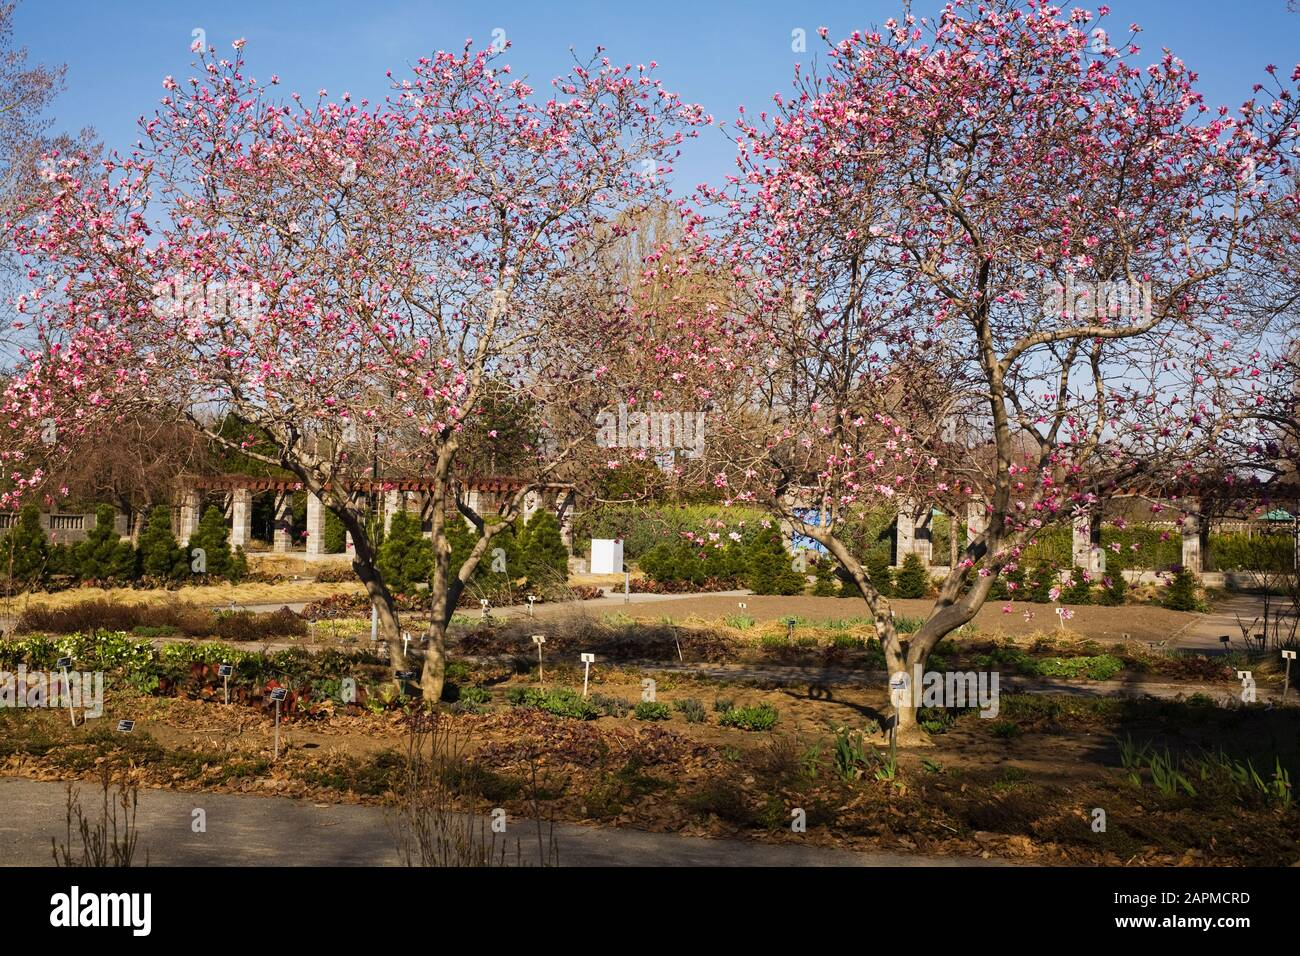 Magnolia Loebneri Trees With Pink And White Flower Blossoms In The